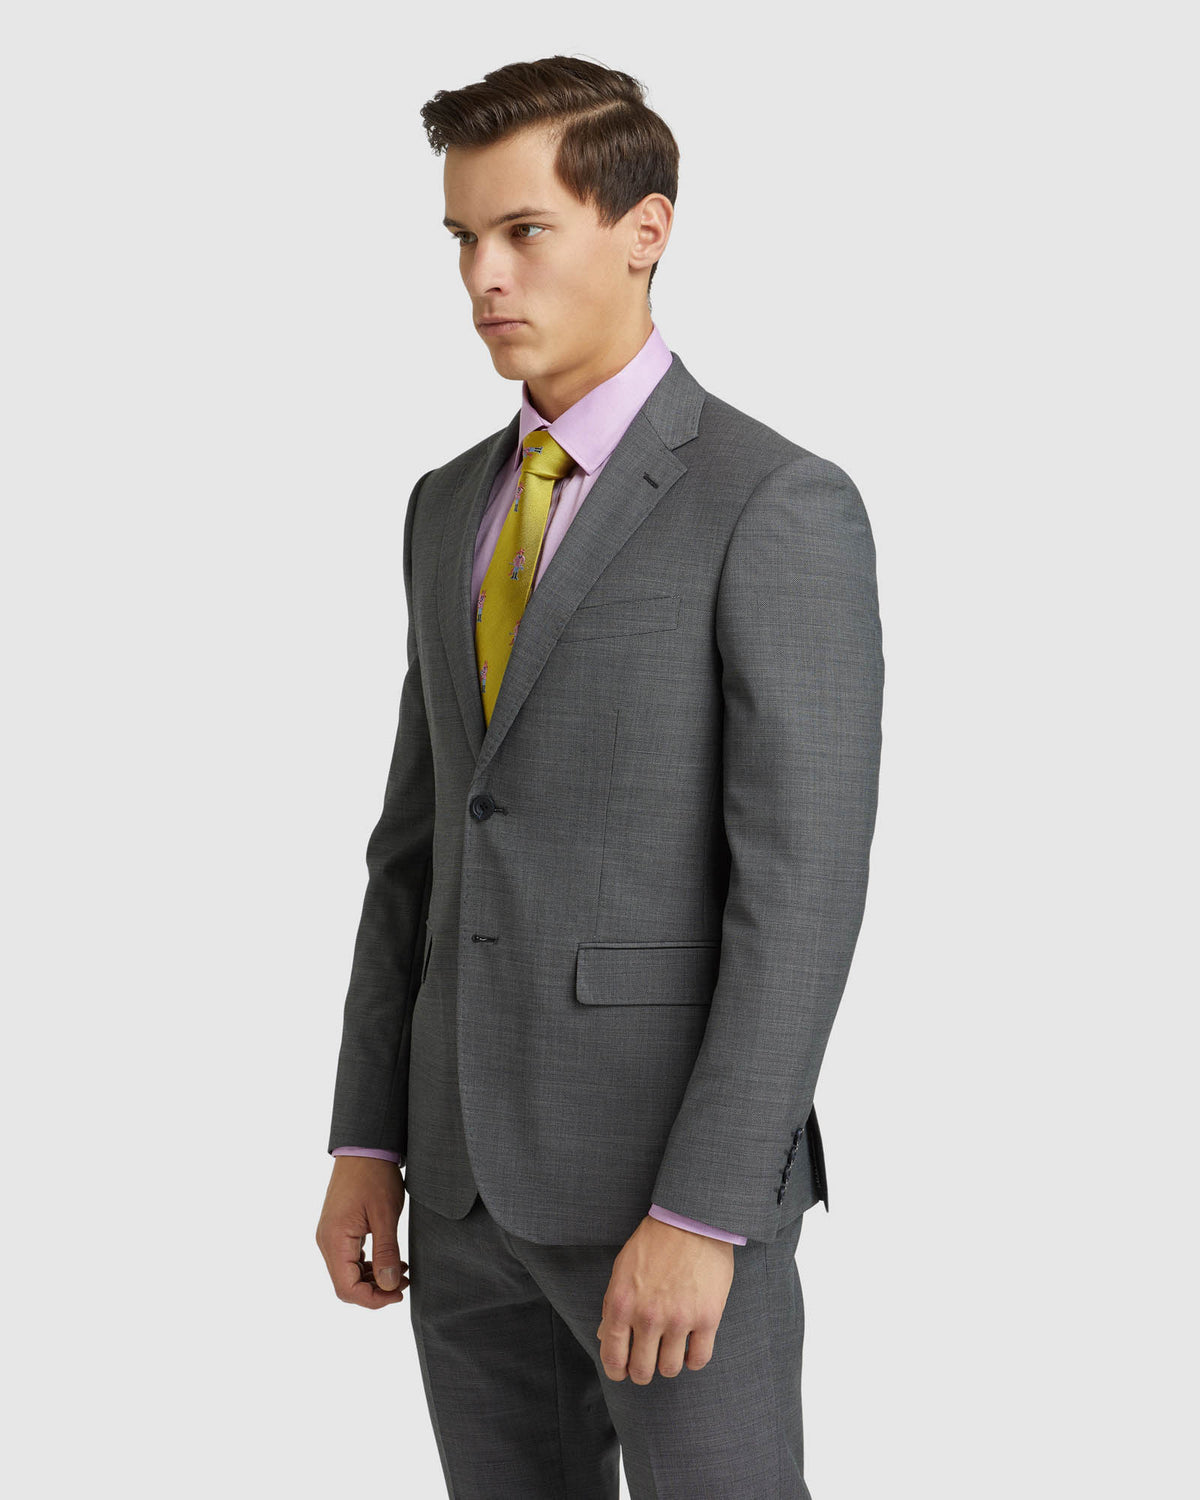 BYRON WOOL SUIT JACKET CHARCOAL